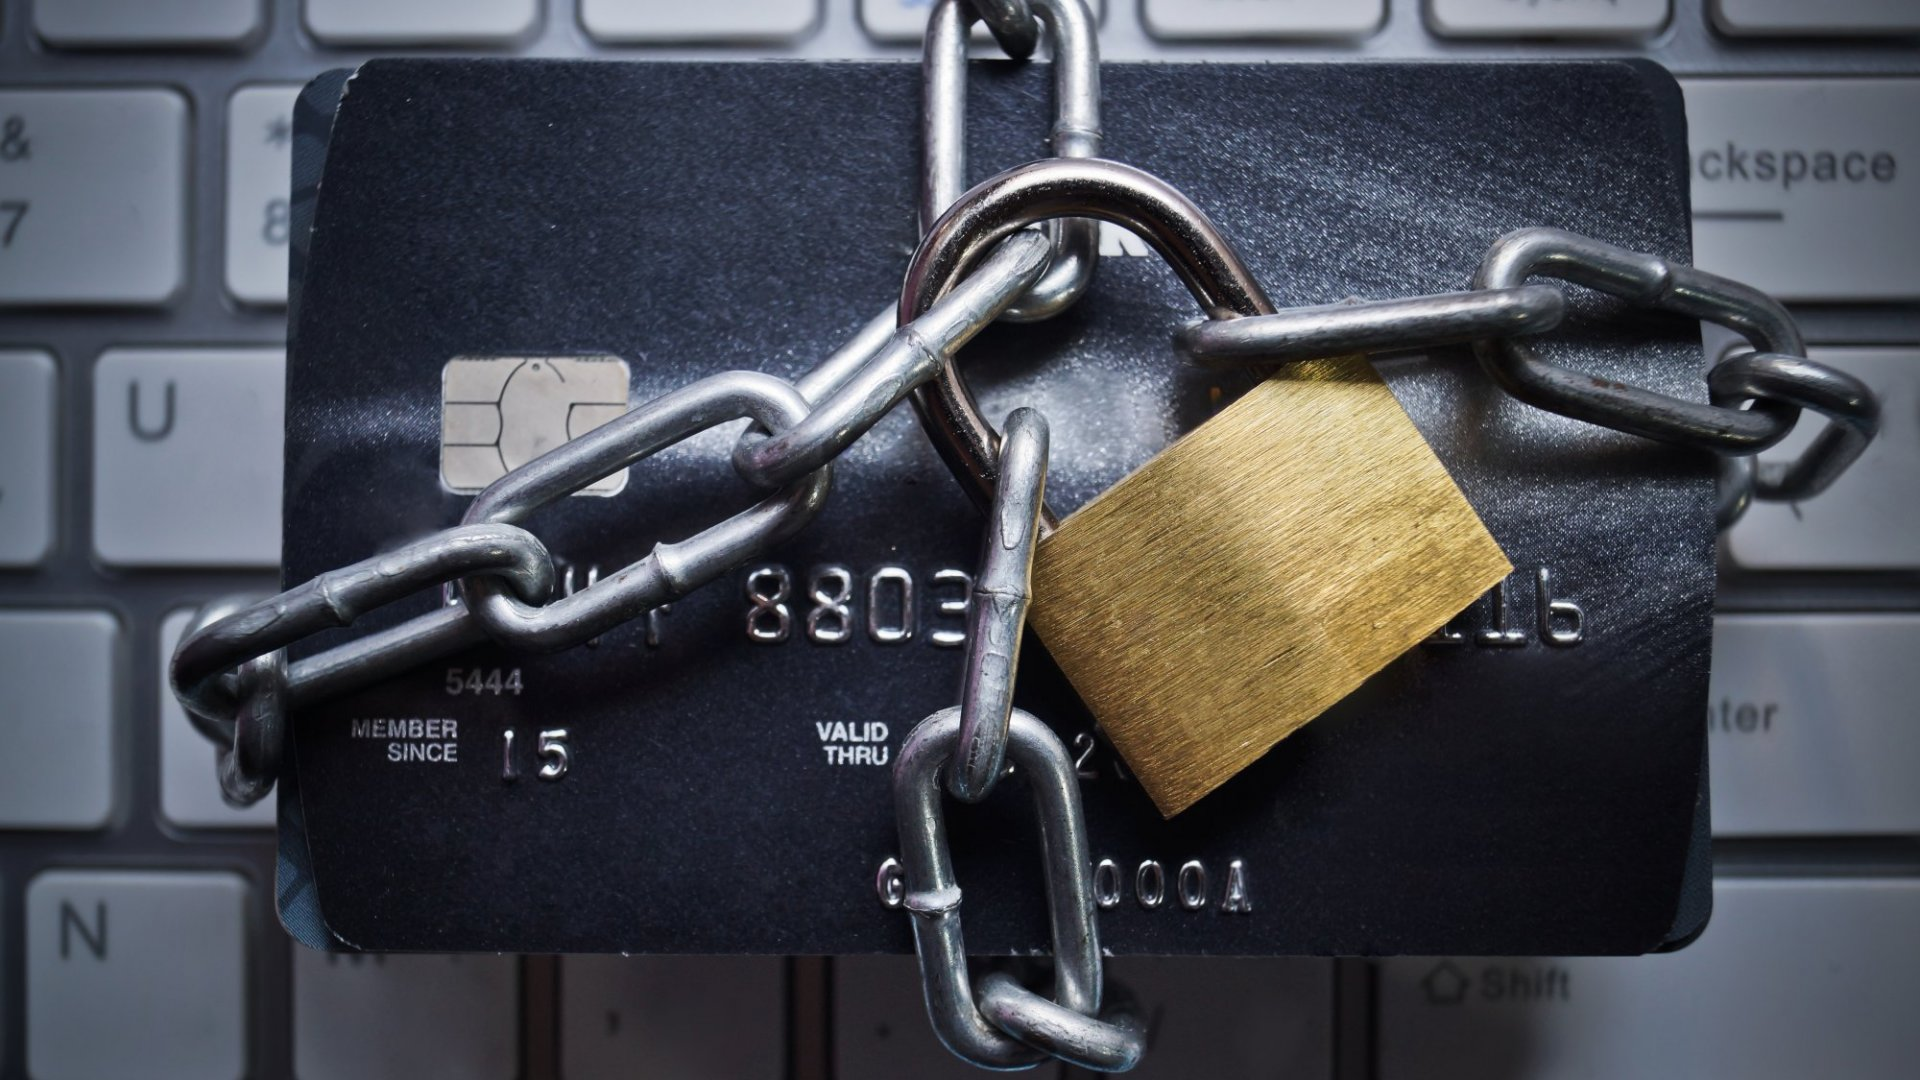 The Next Data Breach Is Coming. Here Are 6  Credit Monitoring Services You Can Use to Protect Yourself